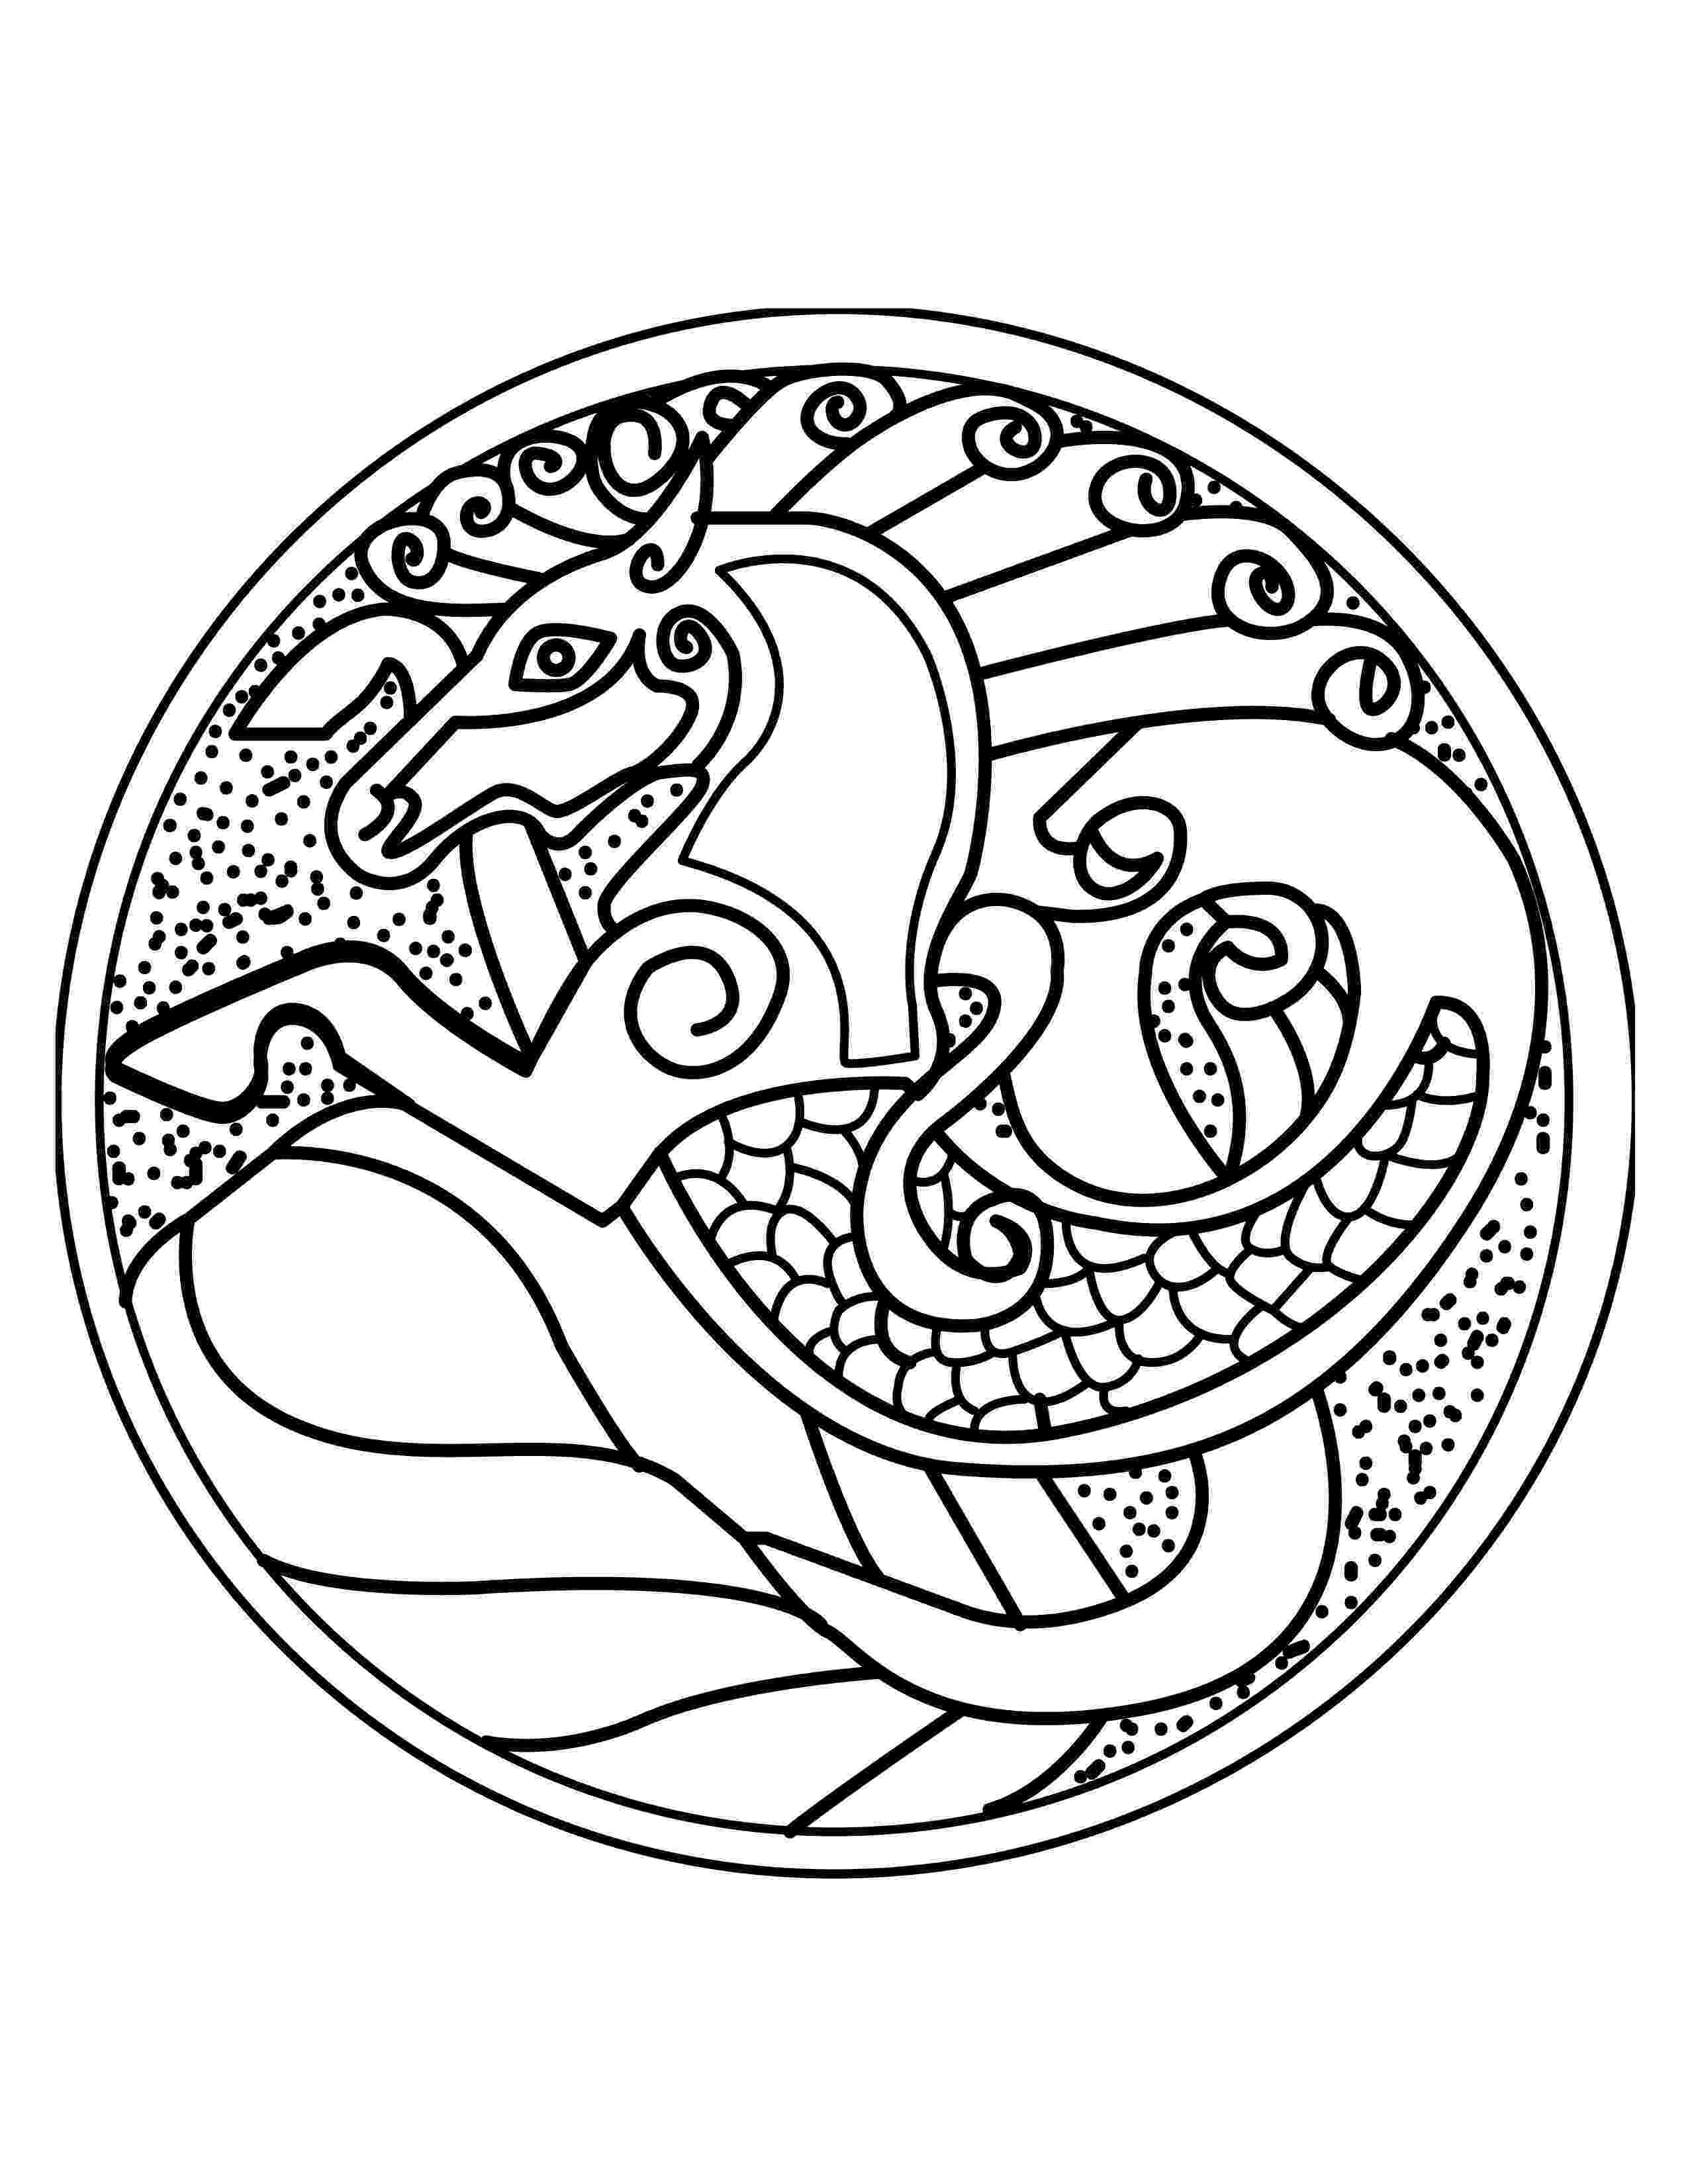 coloring pages 8 1 2 x 11 coloring pages 8 1 2 x 11 free download on clipartmag 1 coloring pages x 11 8 2